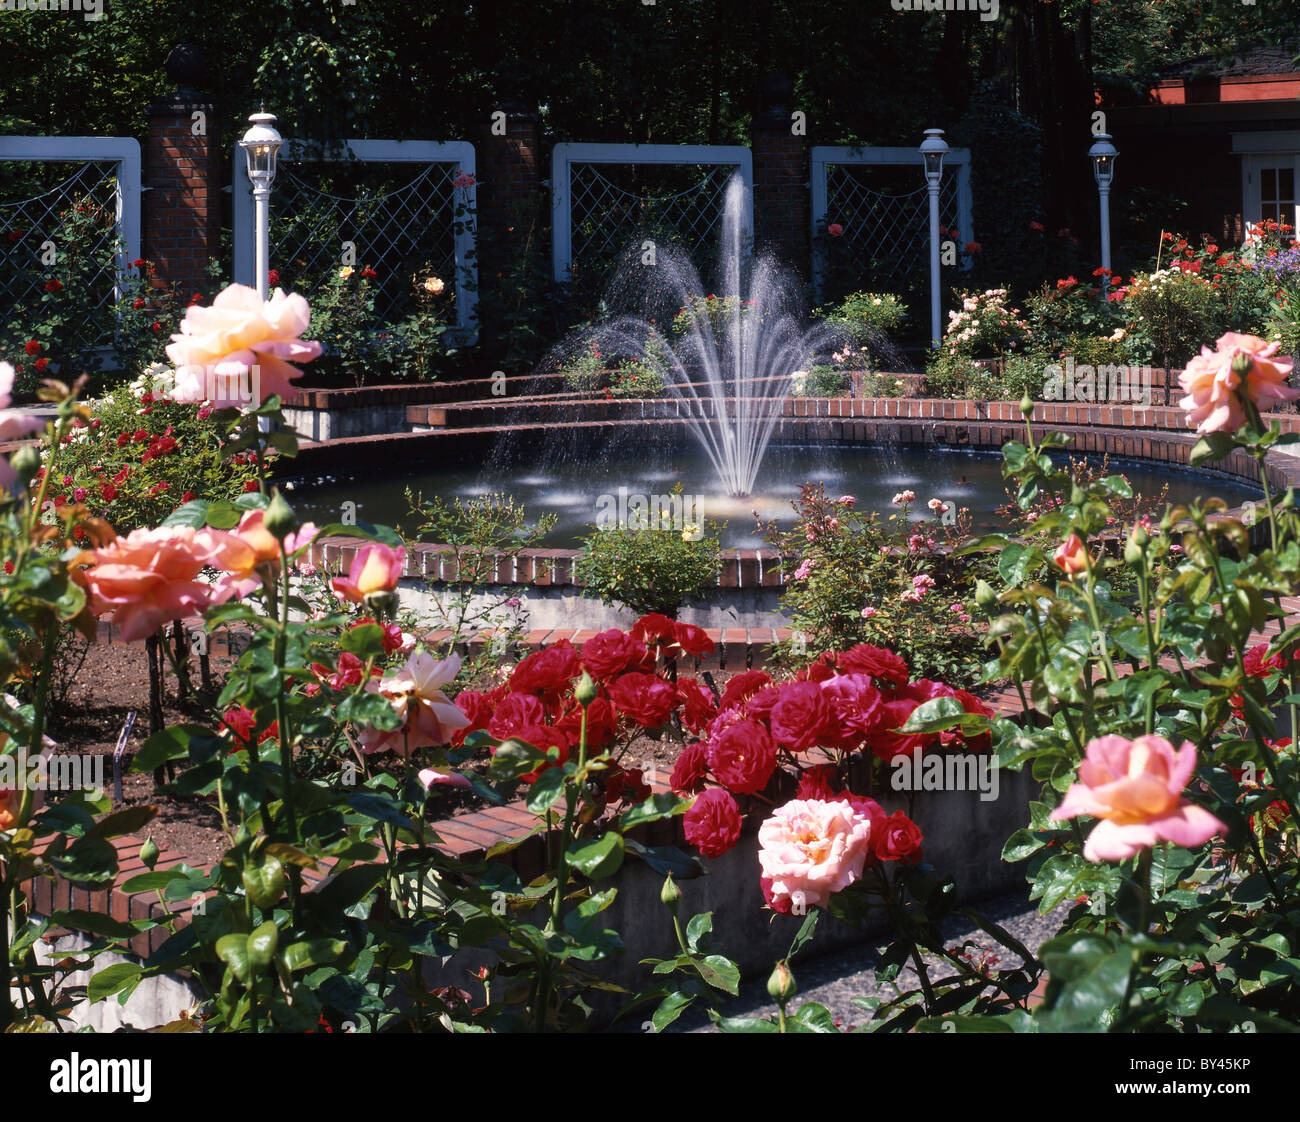 Rose Garden with Fountain - Stock Image